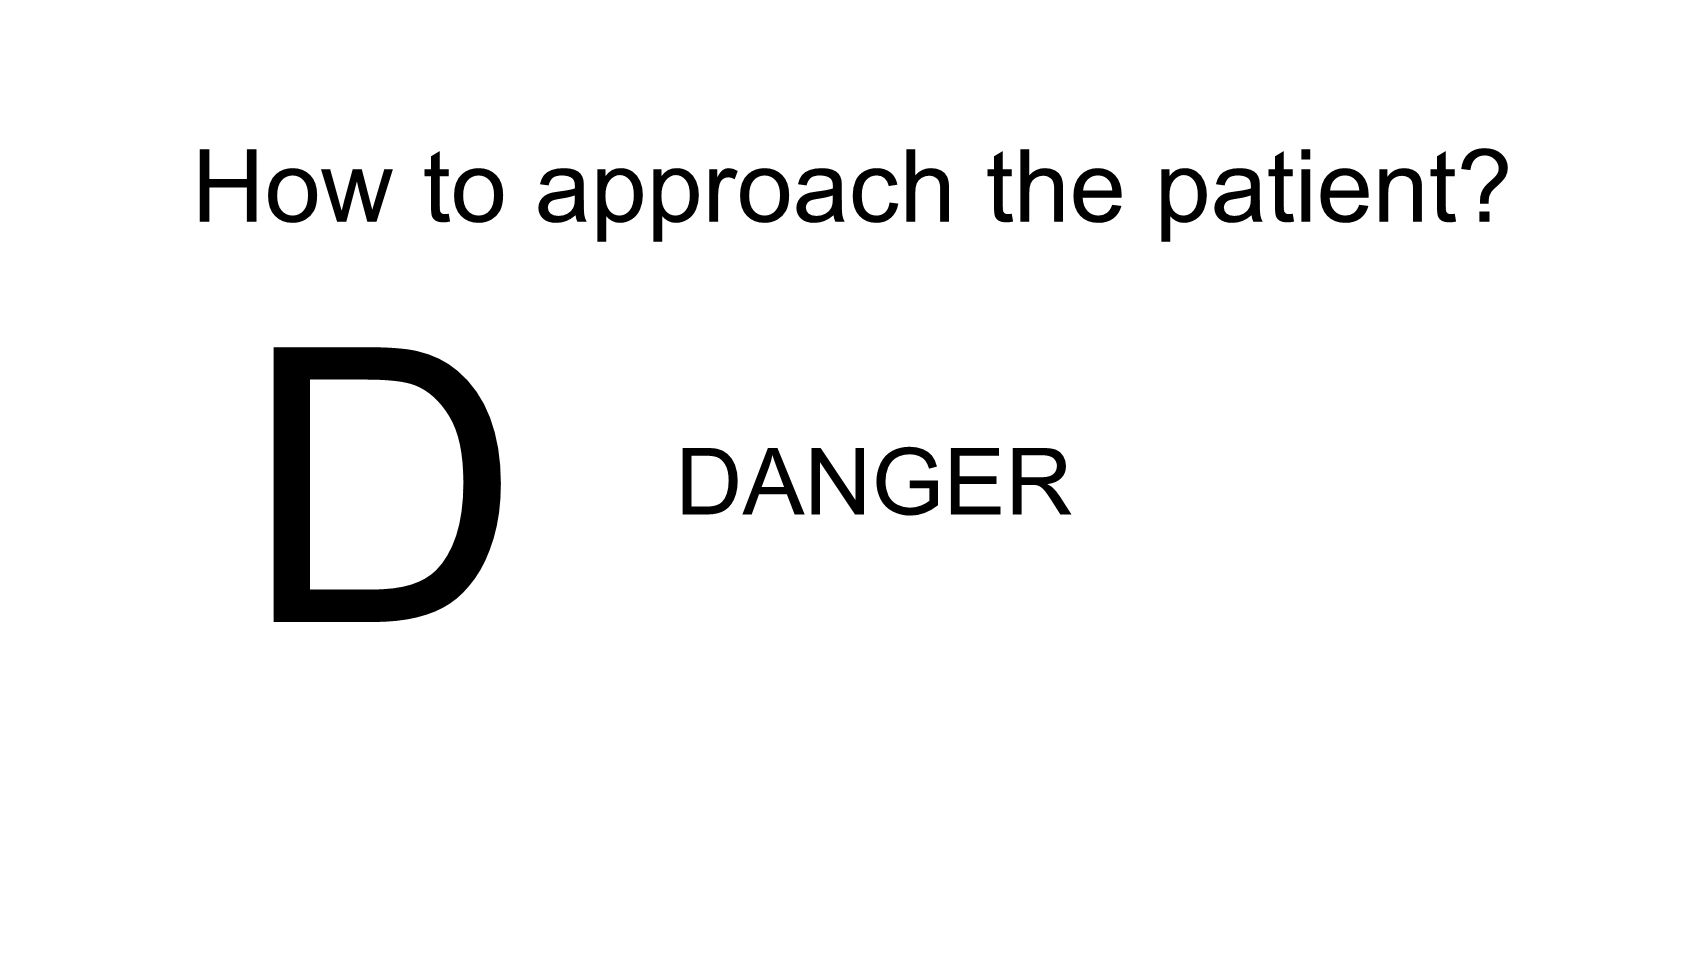 How to approach the patient D DANGER